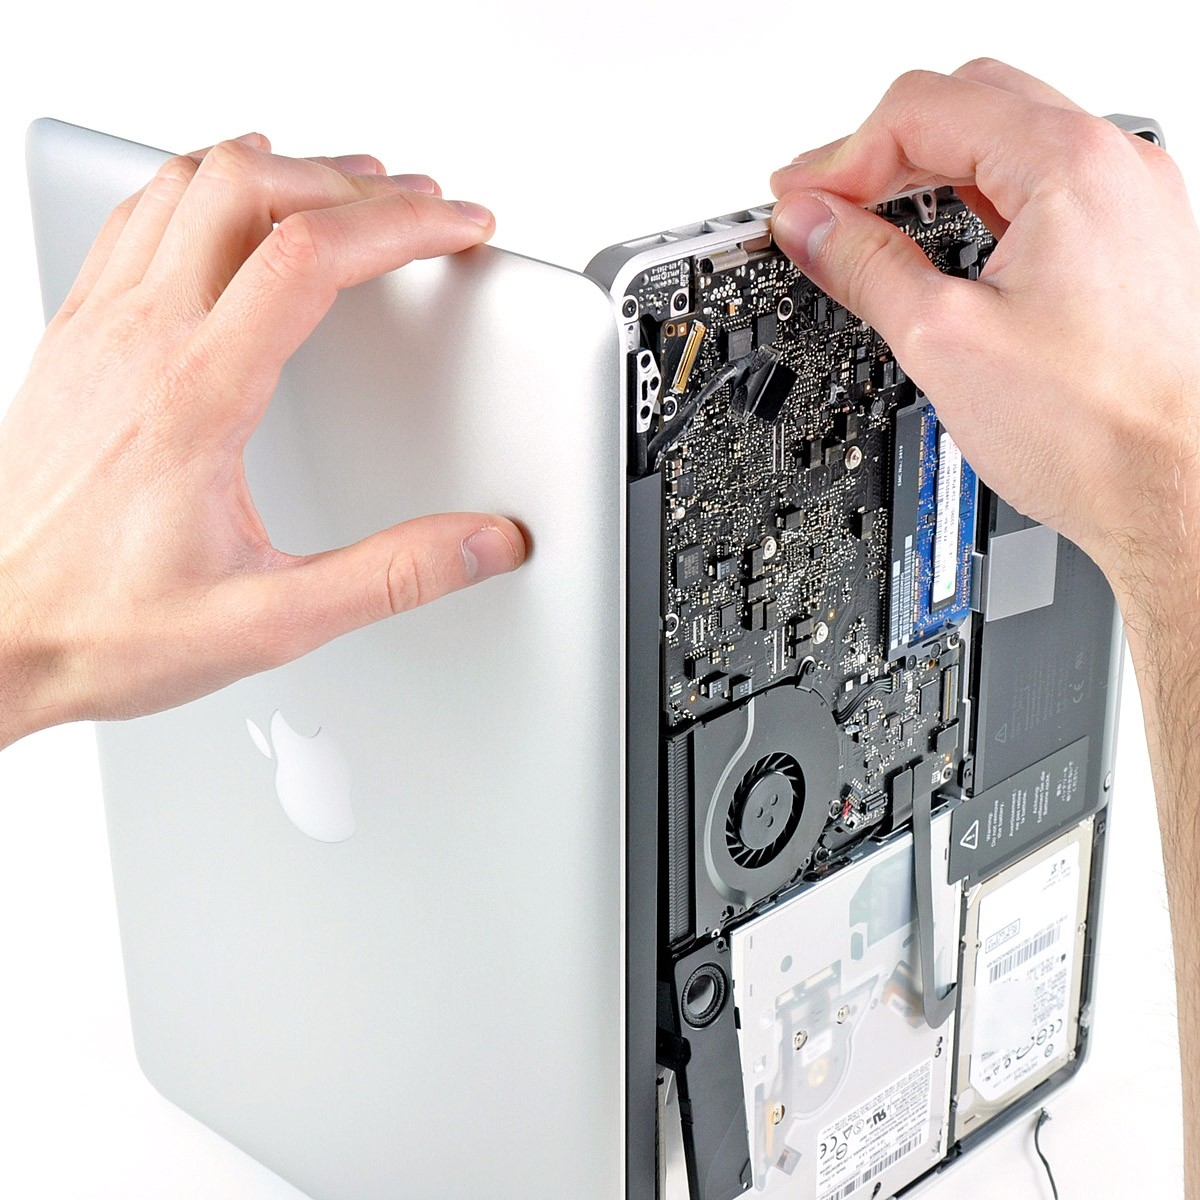 Data Recovery Tools,Hard Drive Data Recovery Services,Data